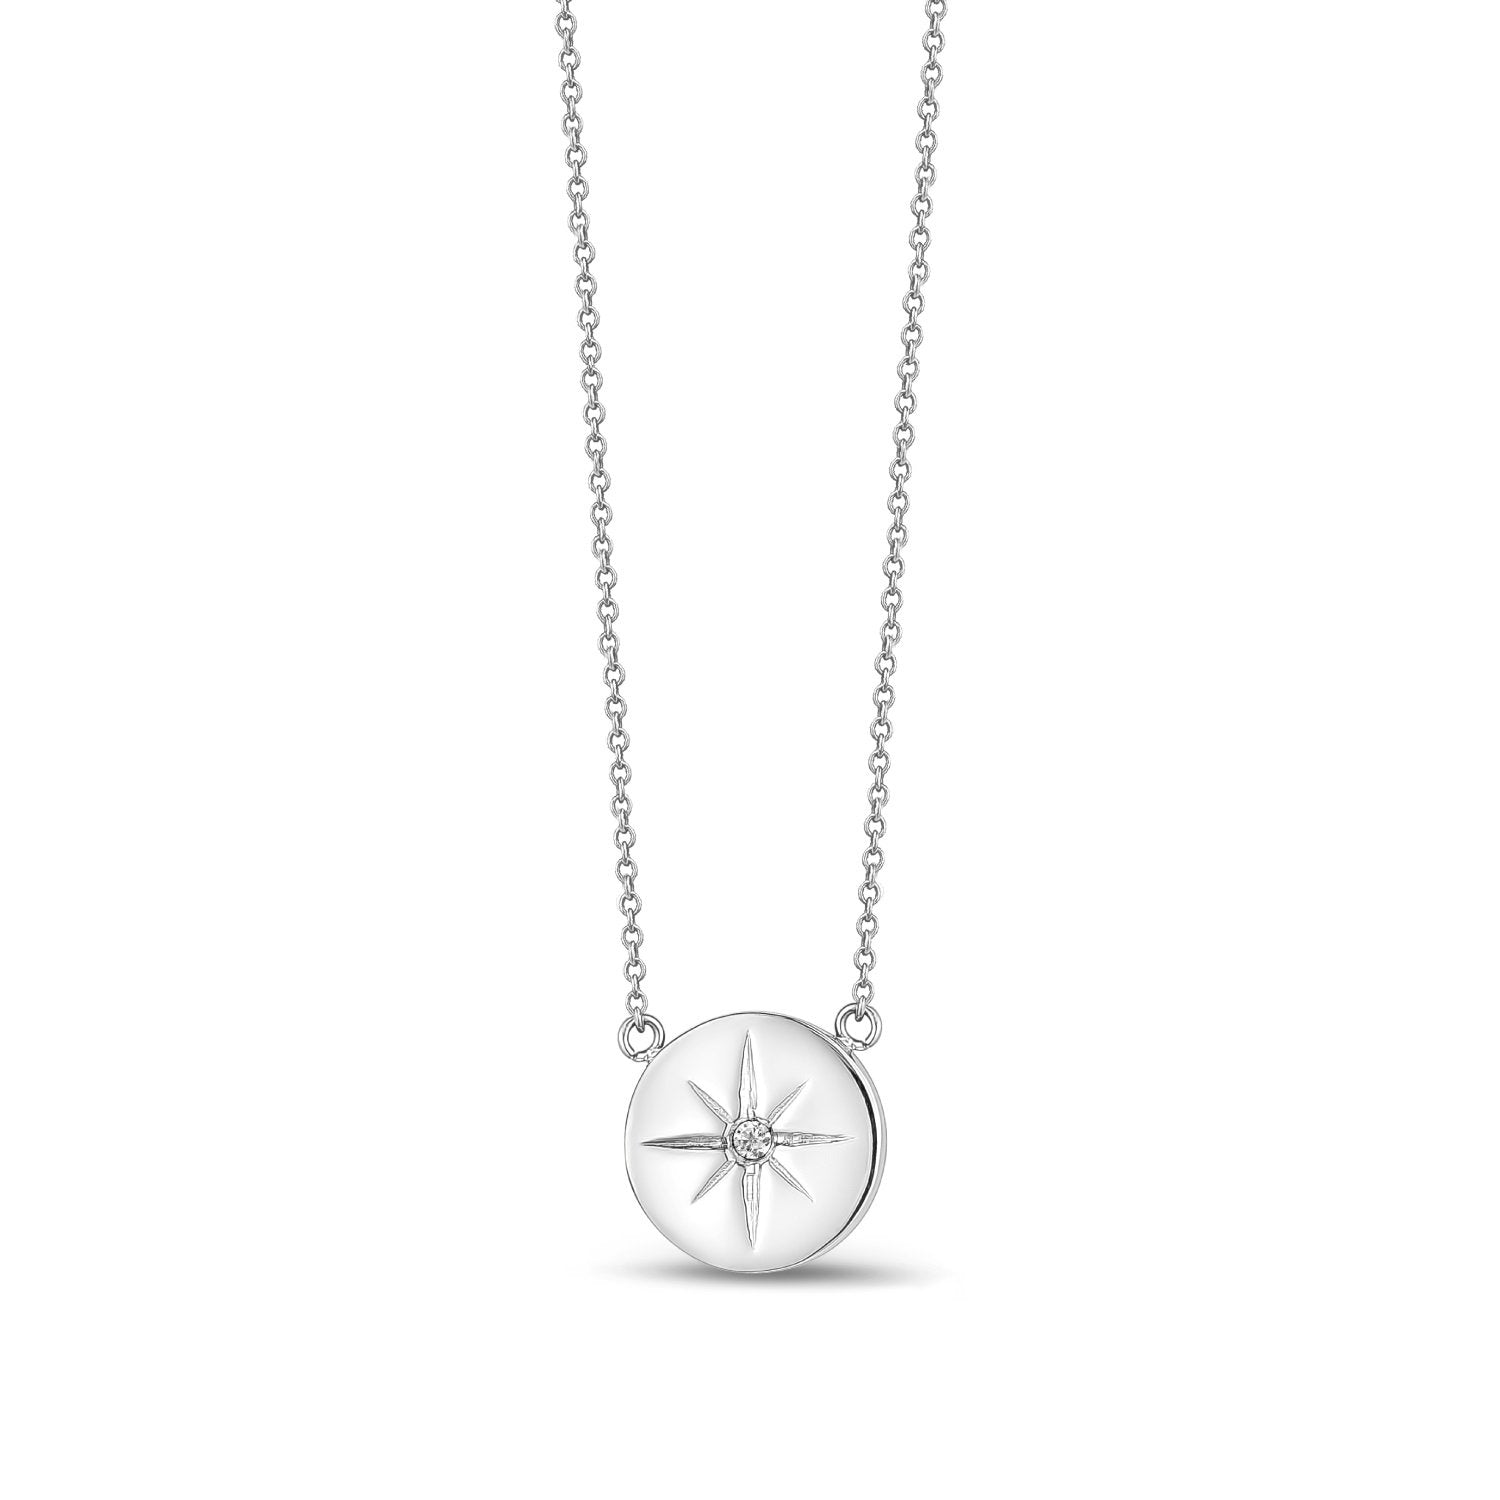 Women Pendant - Stainless Steel Personalized North Star Pendant Necklace